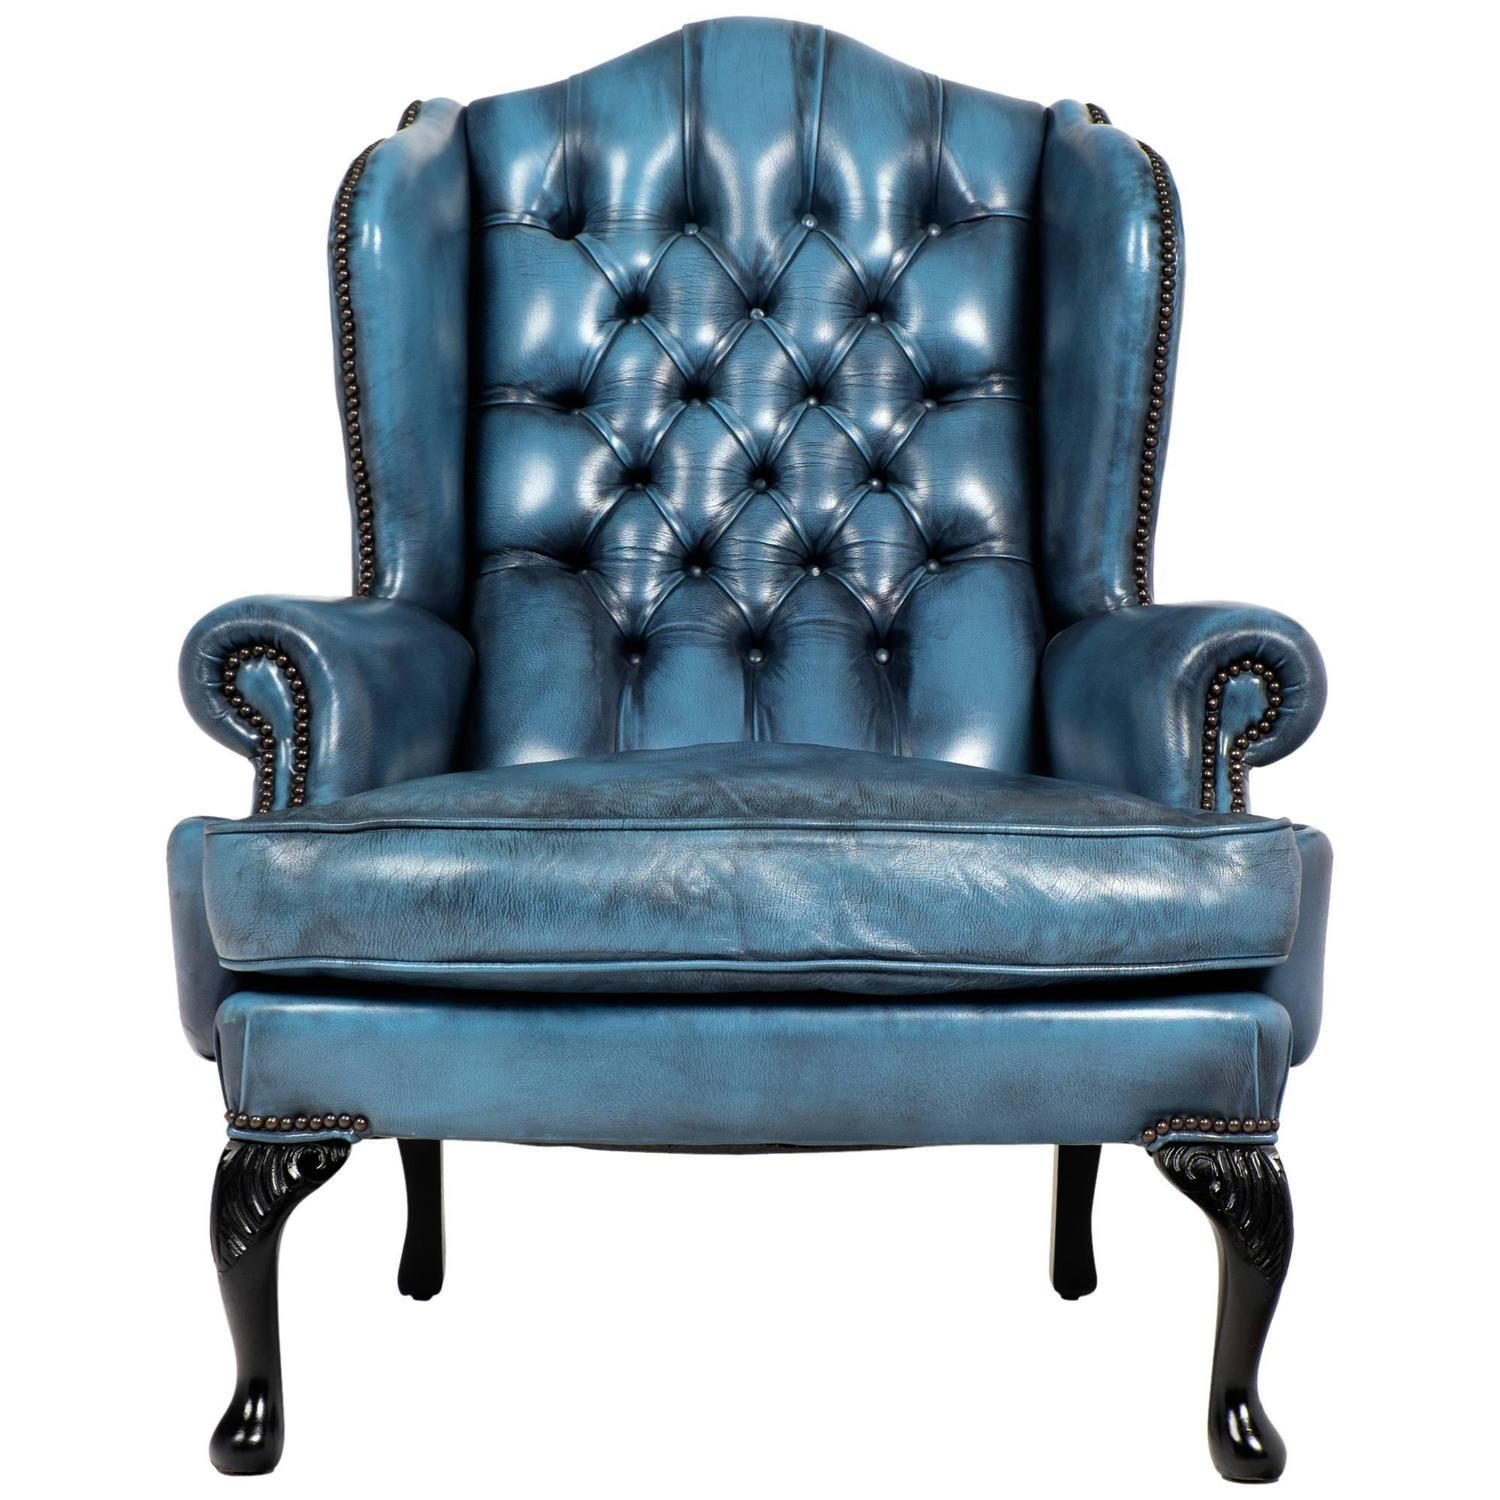 Captivating Vintage Steel Blue Leather Chesterfield Wingback Armchair   England   C1940s